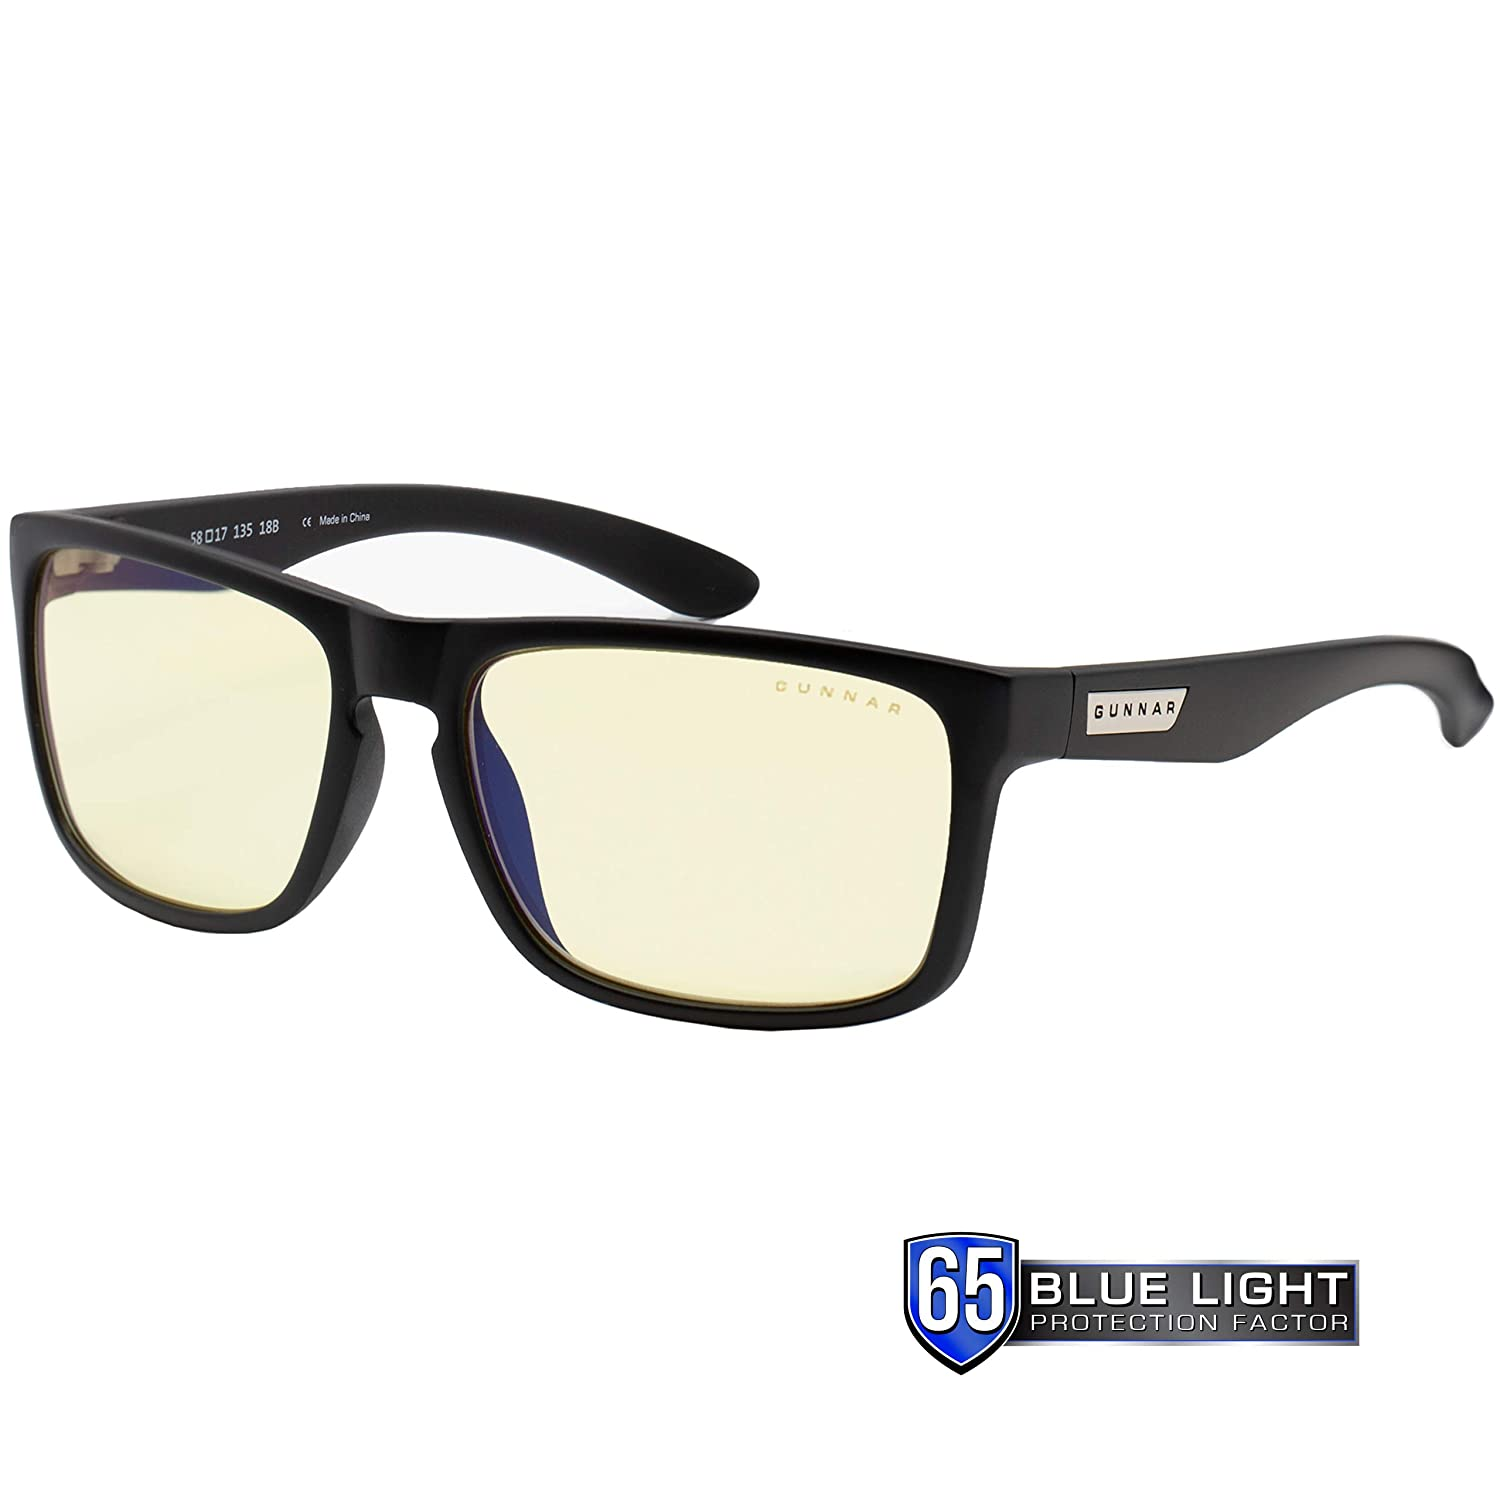 Gaming Glasses 100/% UV Light 98/% Blue Light Protection Intercept//Onyx by Gunnar Blue Light Blocking Glasses Anti-Reflective To Protect /& Reduce Eye Strain /& Dryness